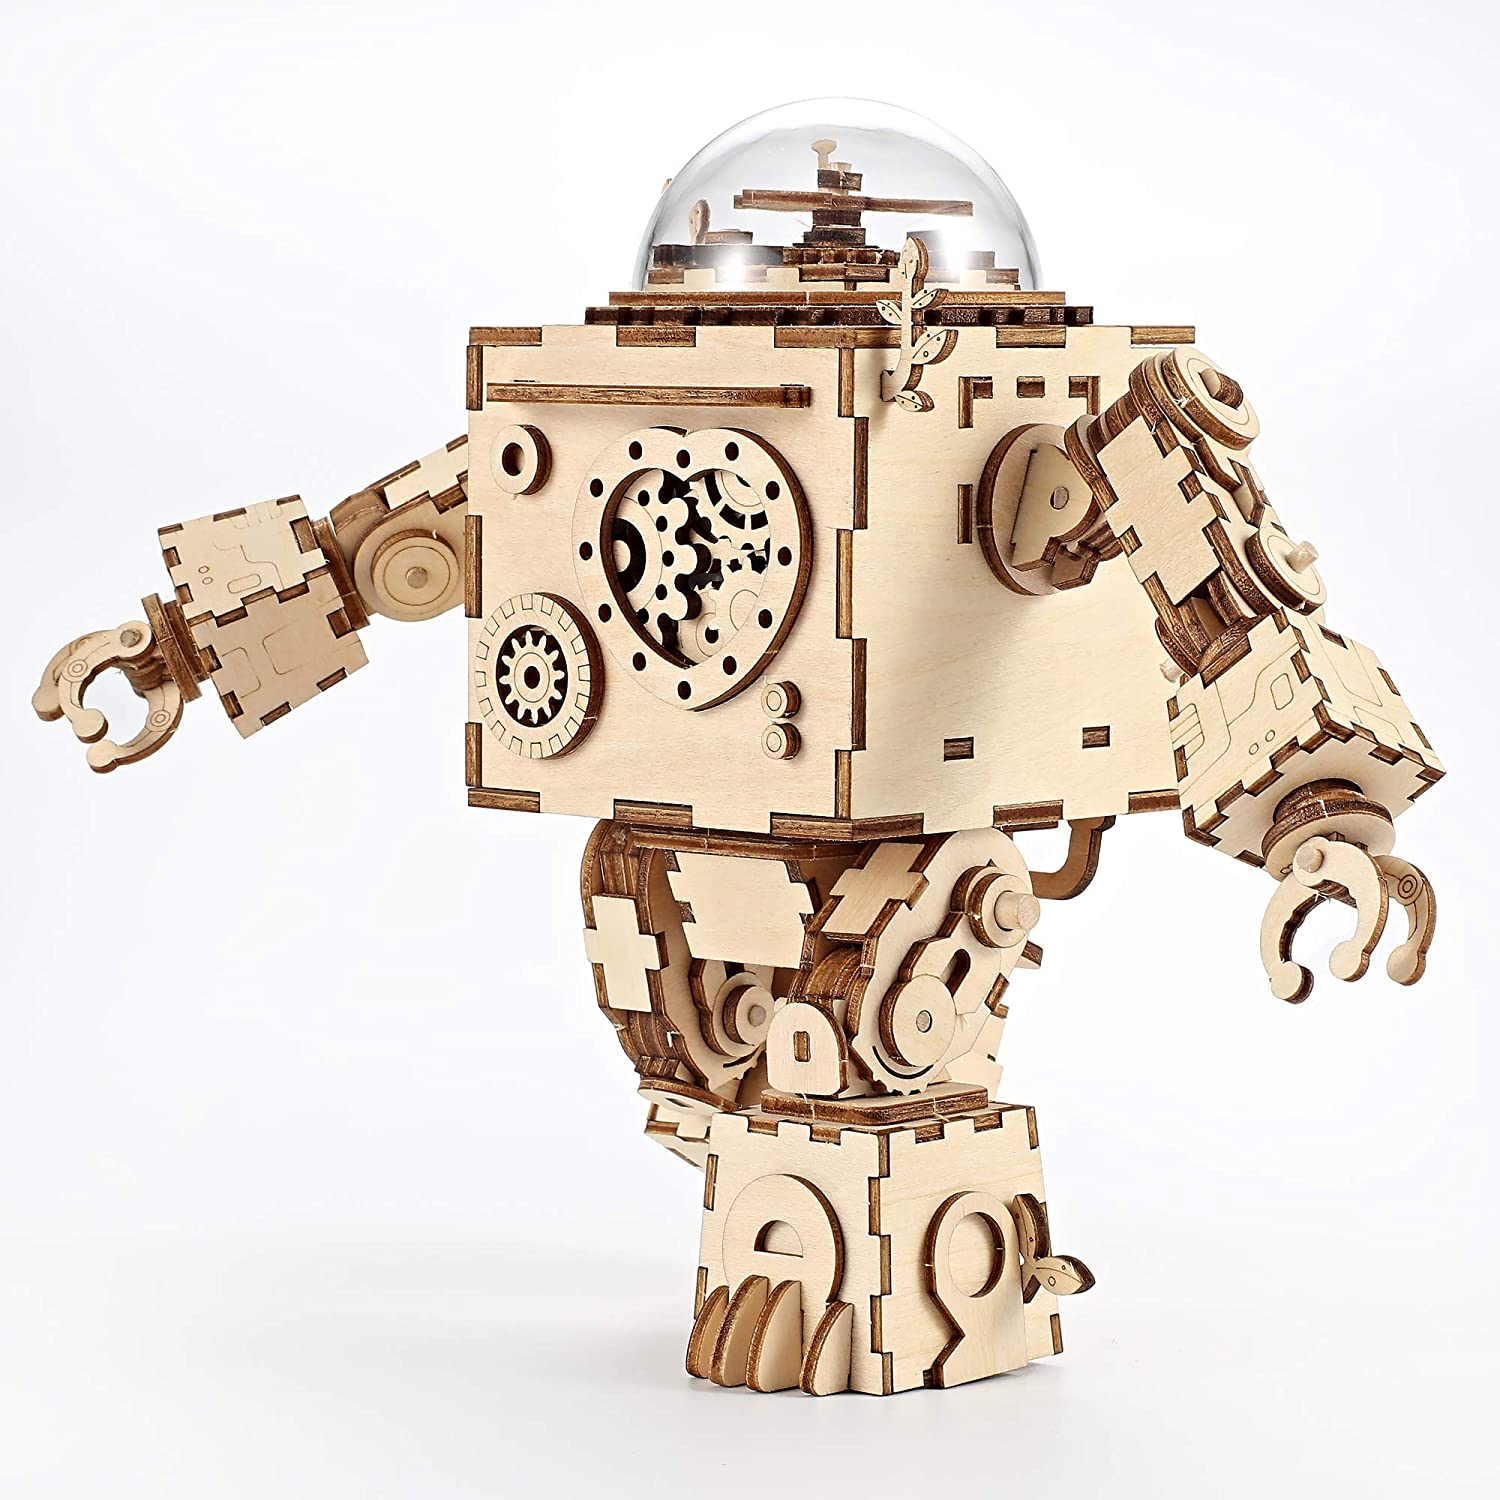 Gifts for Kids - Robot Kit with Music